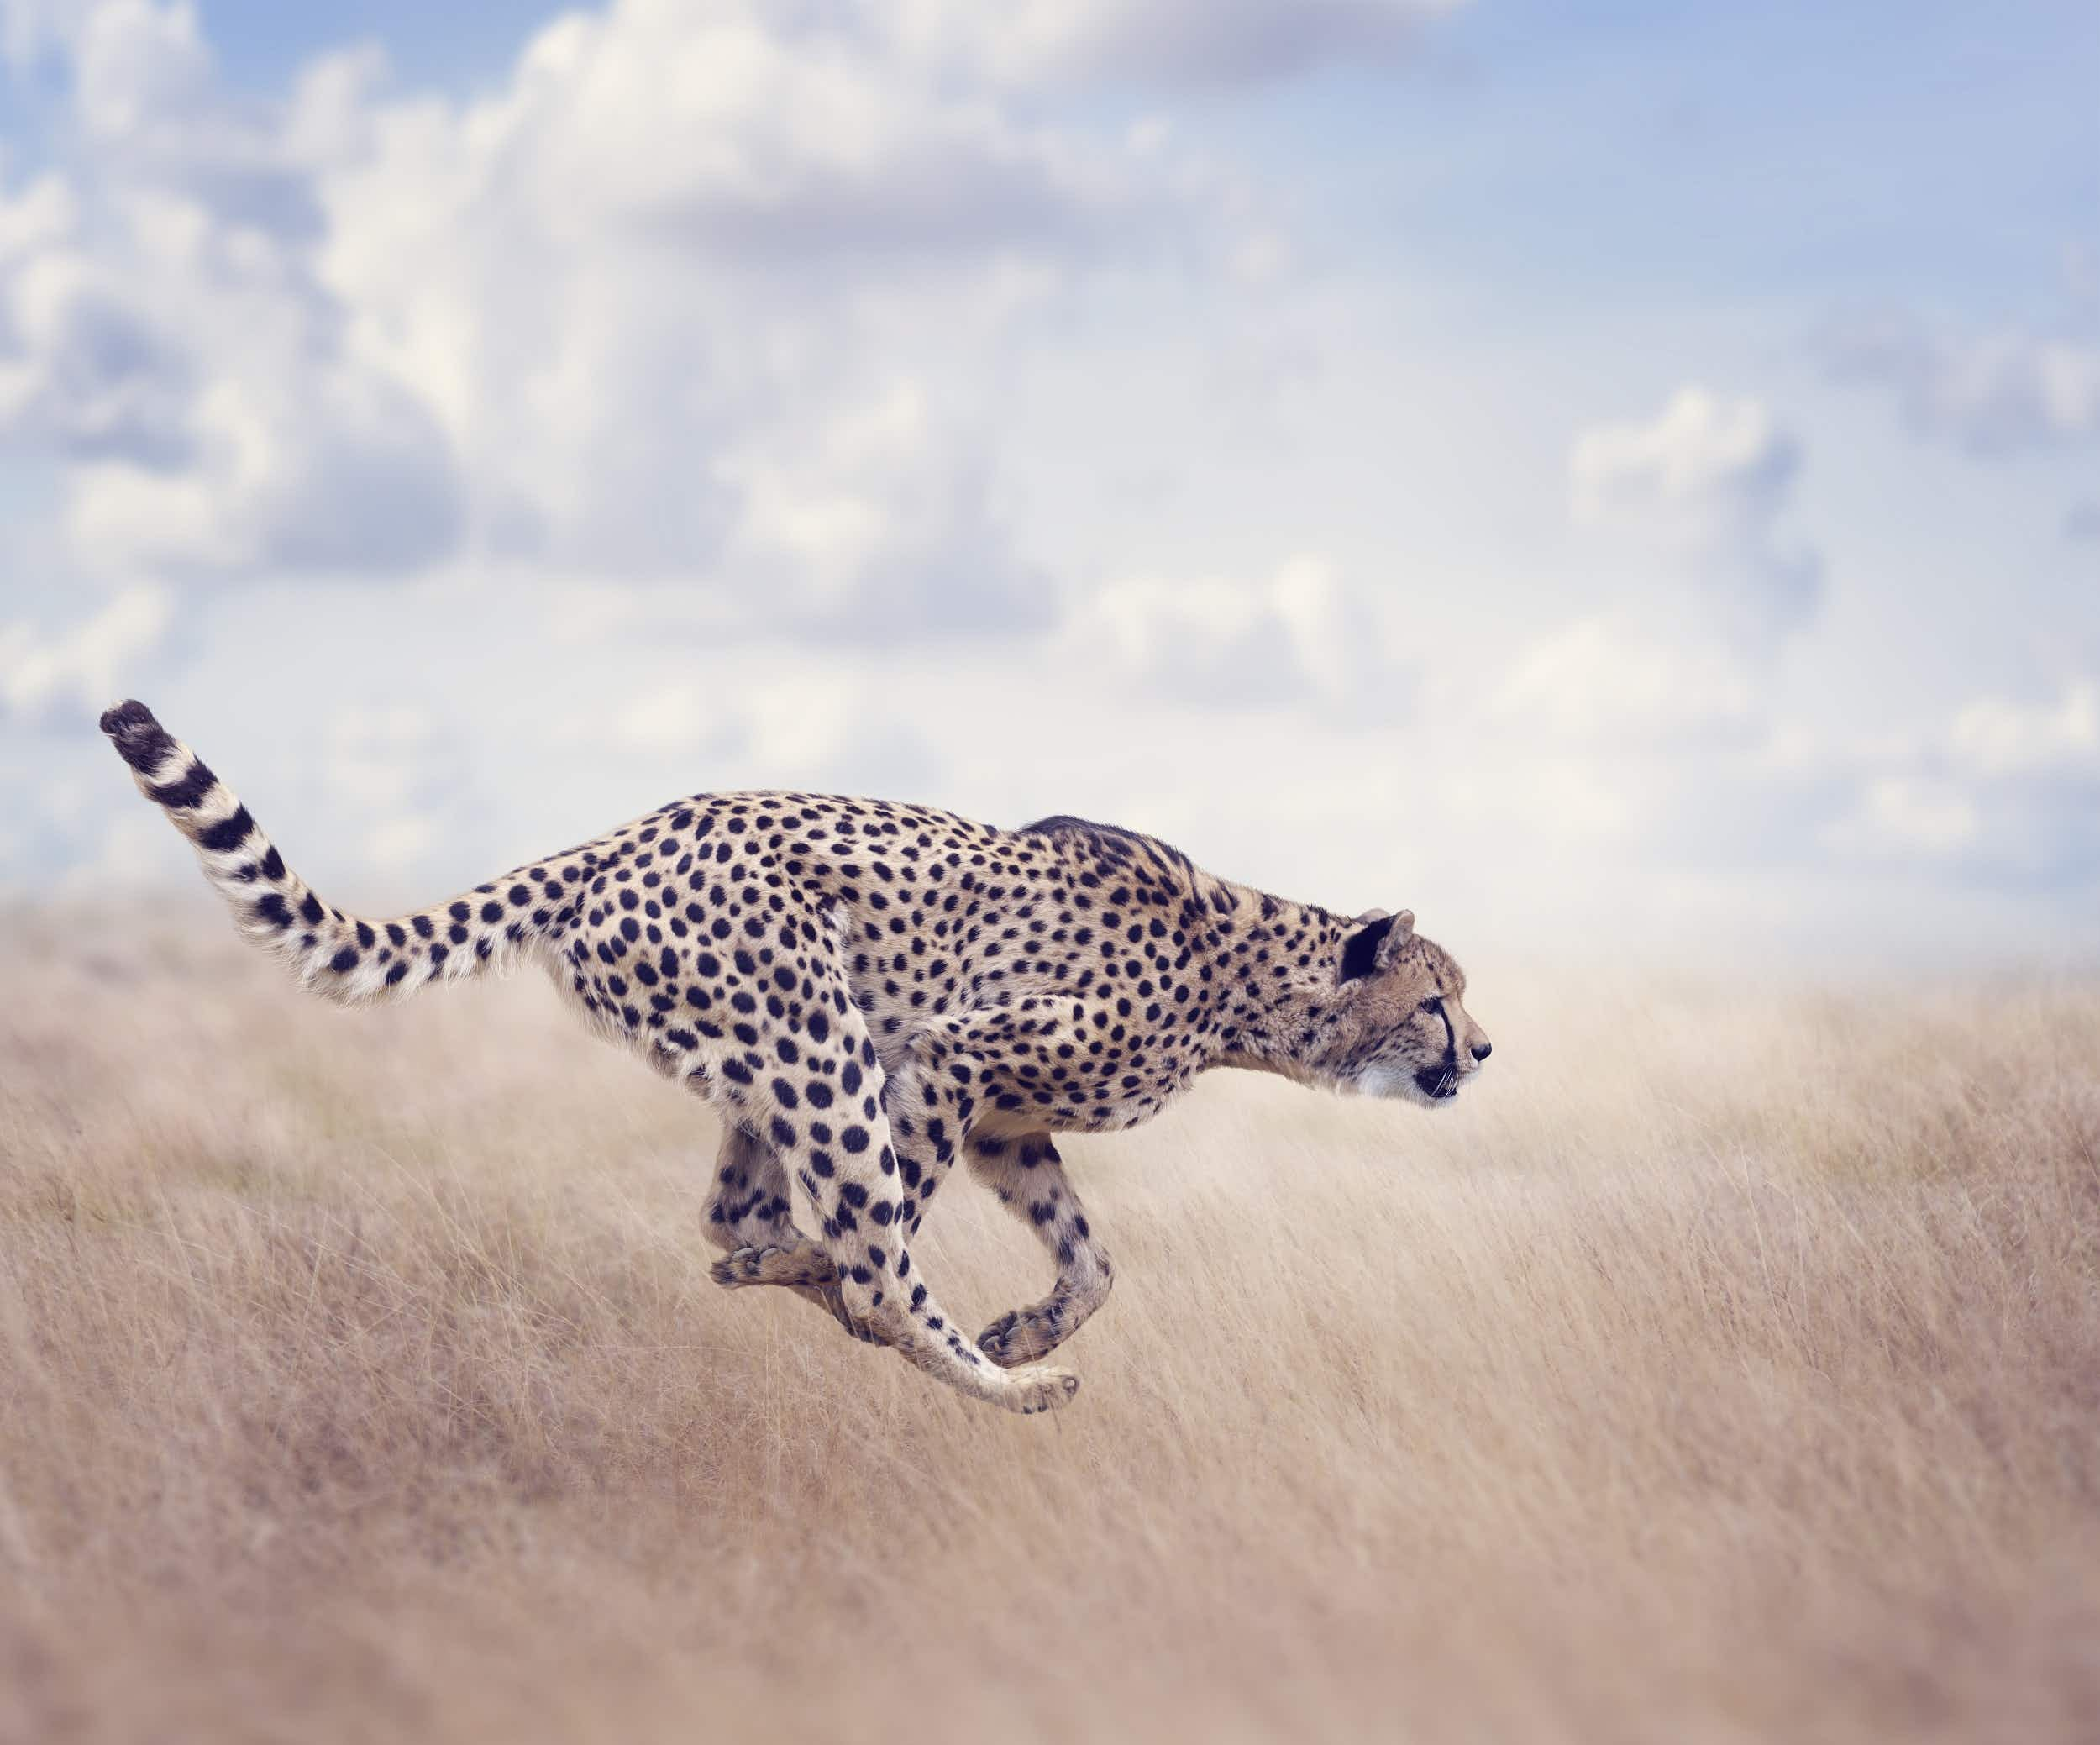 The cheetah's speed is made possible by a series of remarkable evolutionary adaptations © Saddako / Getty Images